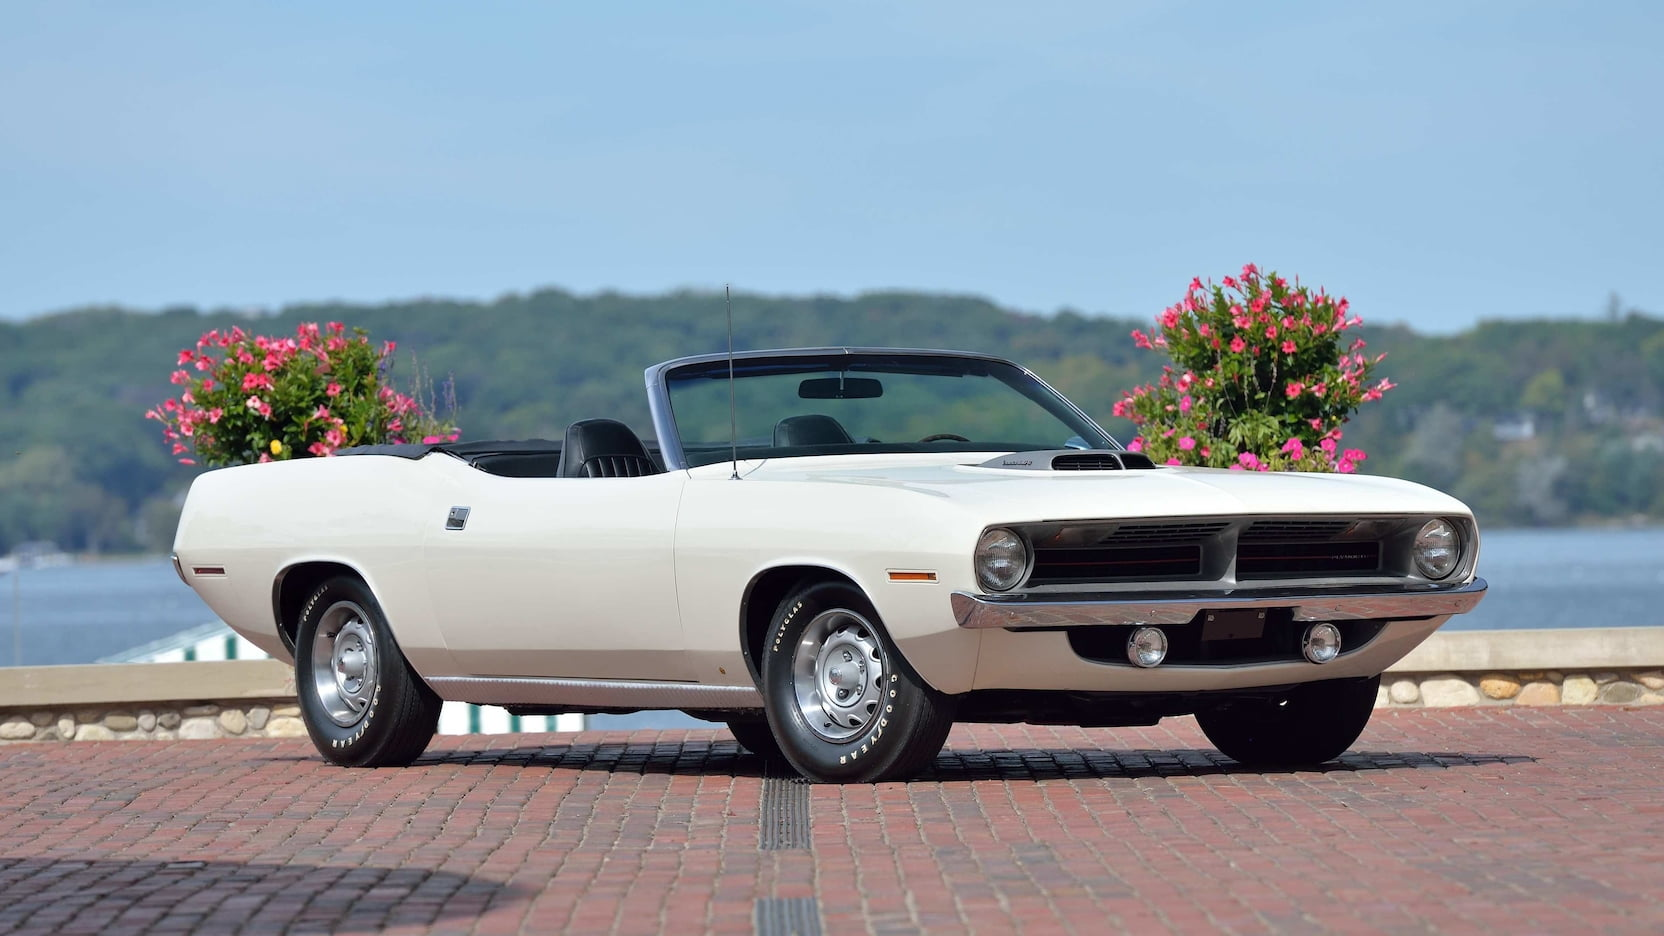 1970 Plymouth Cuda Convertible Pilot Car